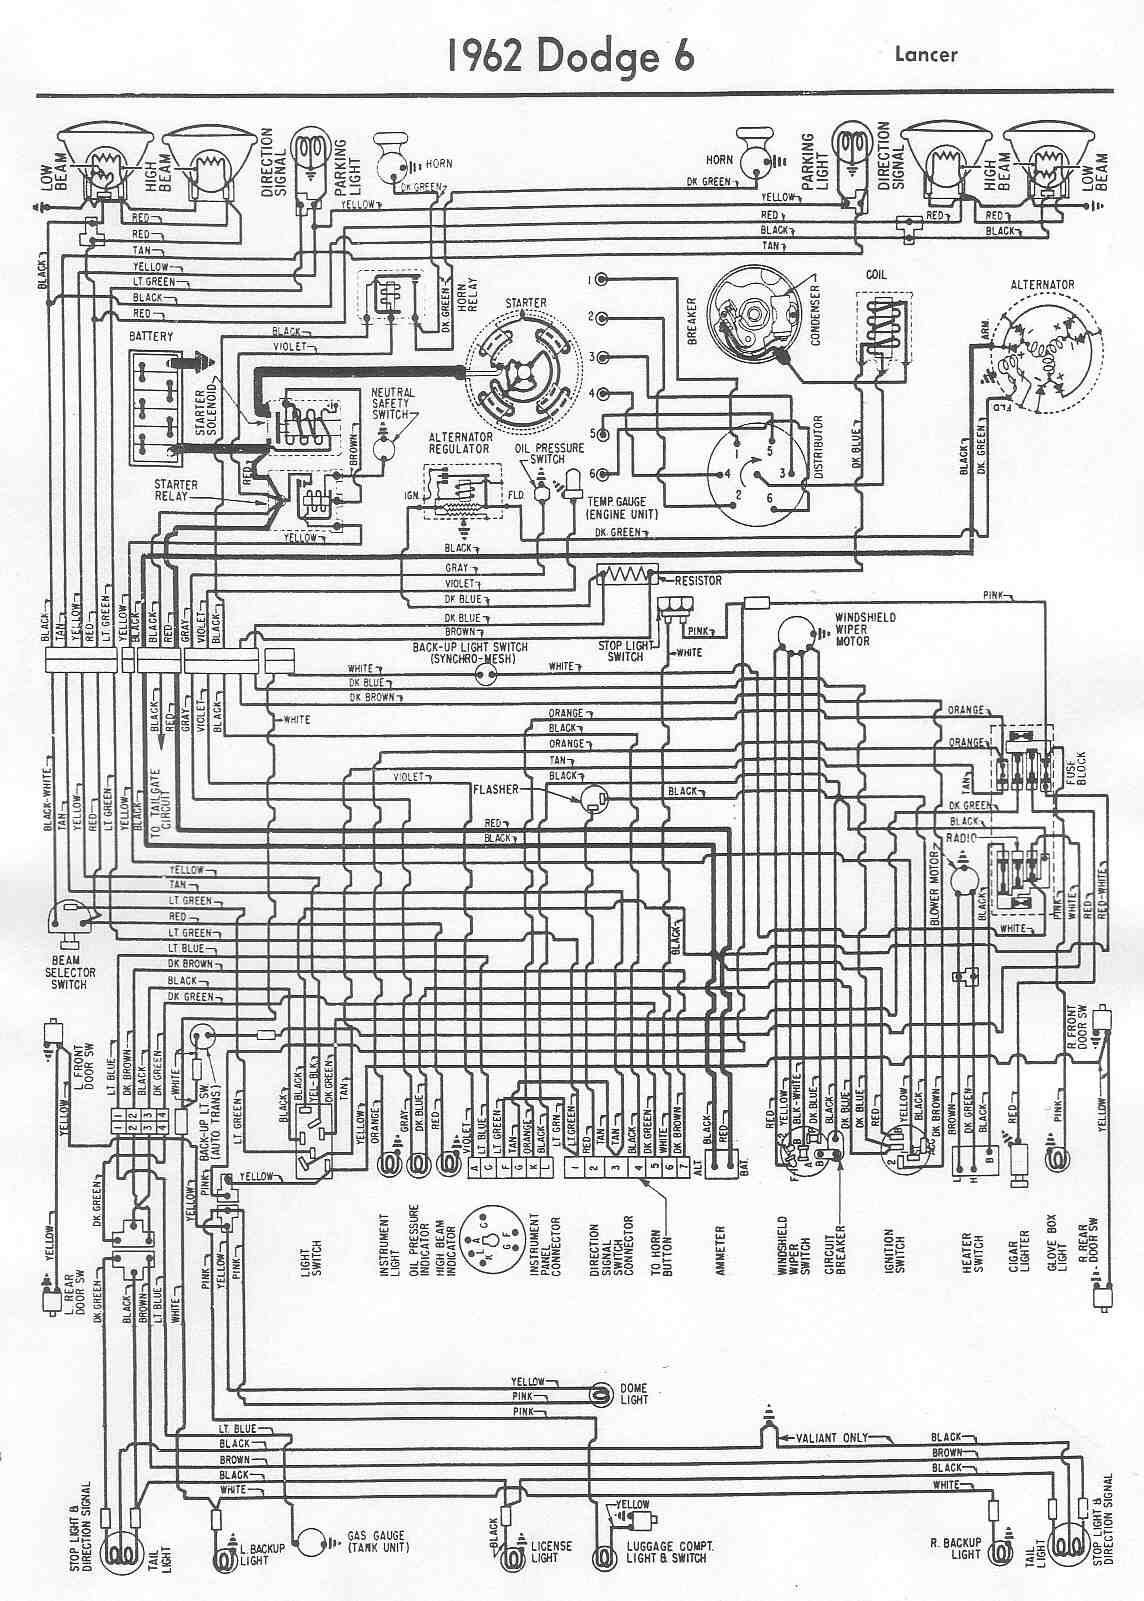 hight resolution of wiring diagram 1997 mitsubishi lancer 6 17 stromoeko de u2022wiring diagram 1997 mitsubishi lancer manual